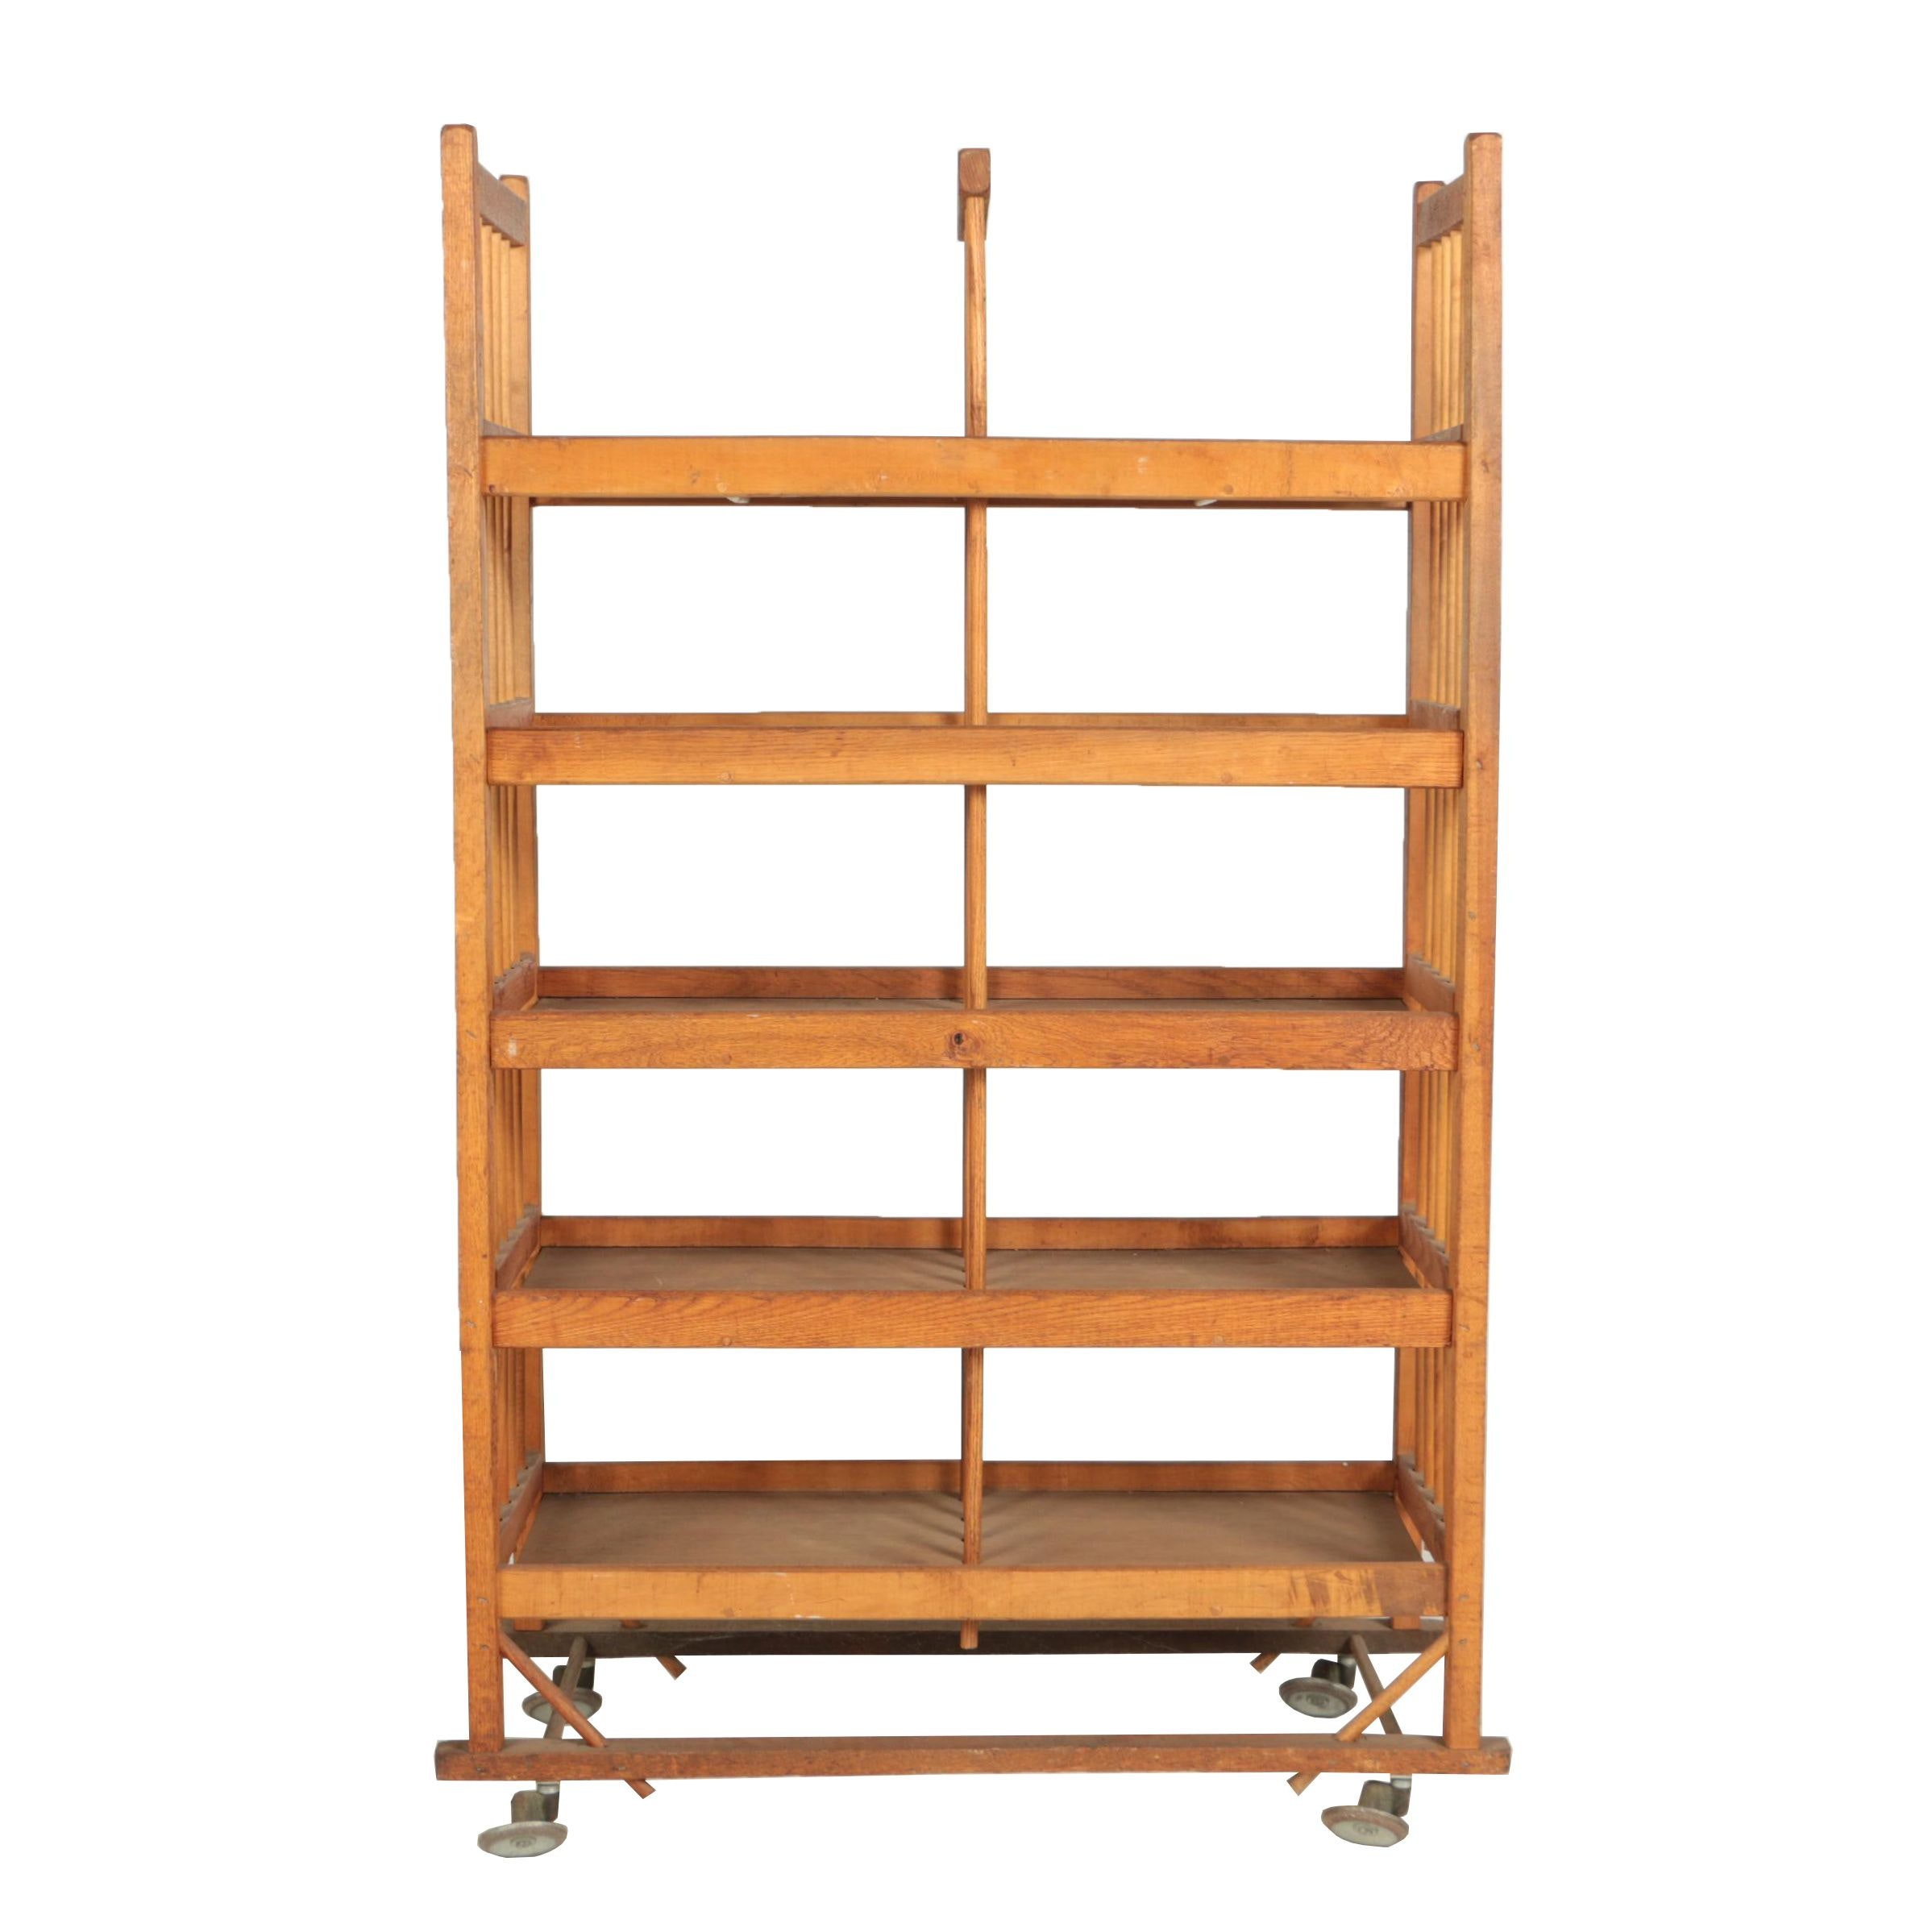 Wooden Five-Tier Industrial Rolling Shoe Rack, Mid 20th Century